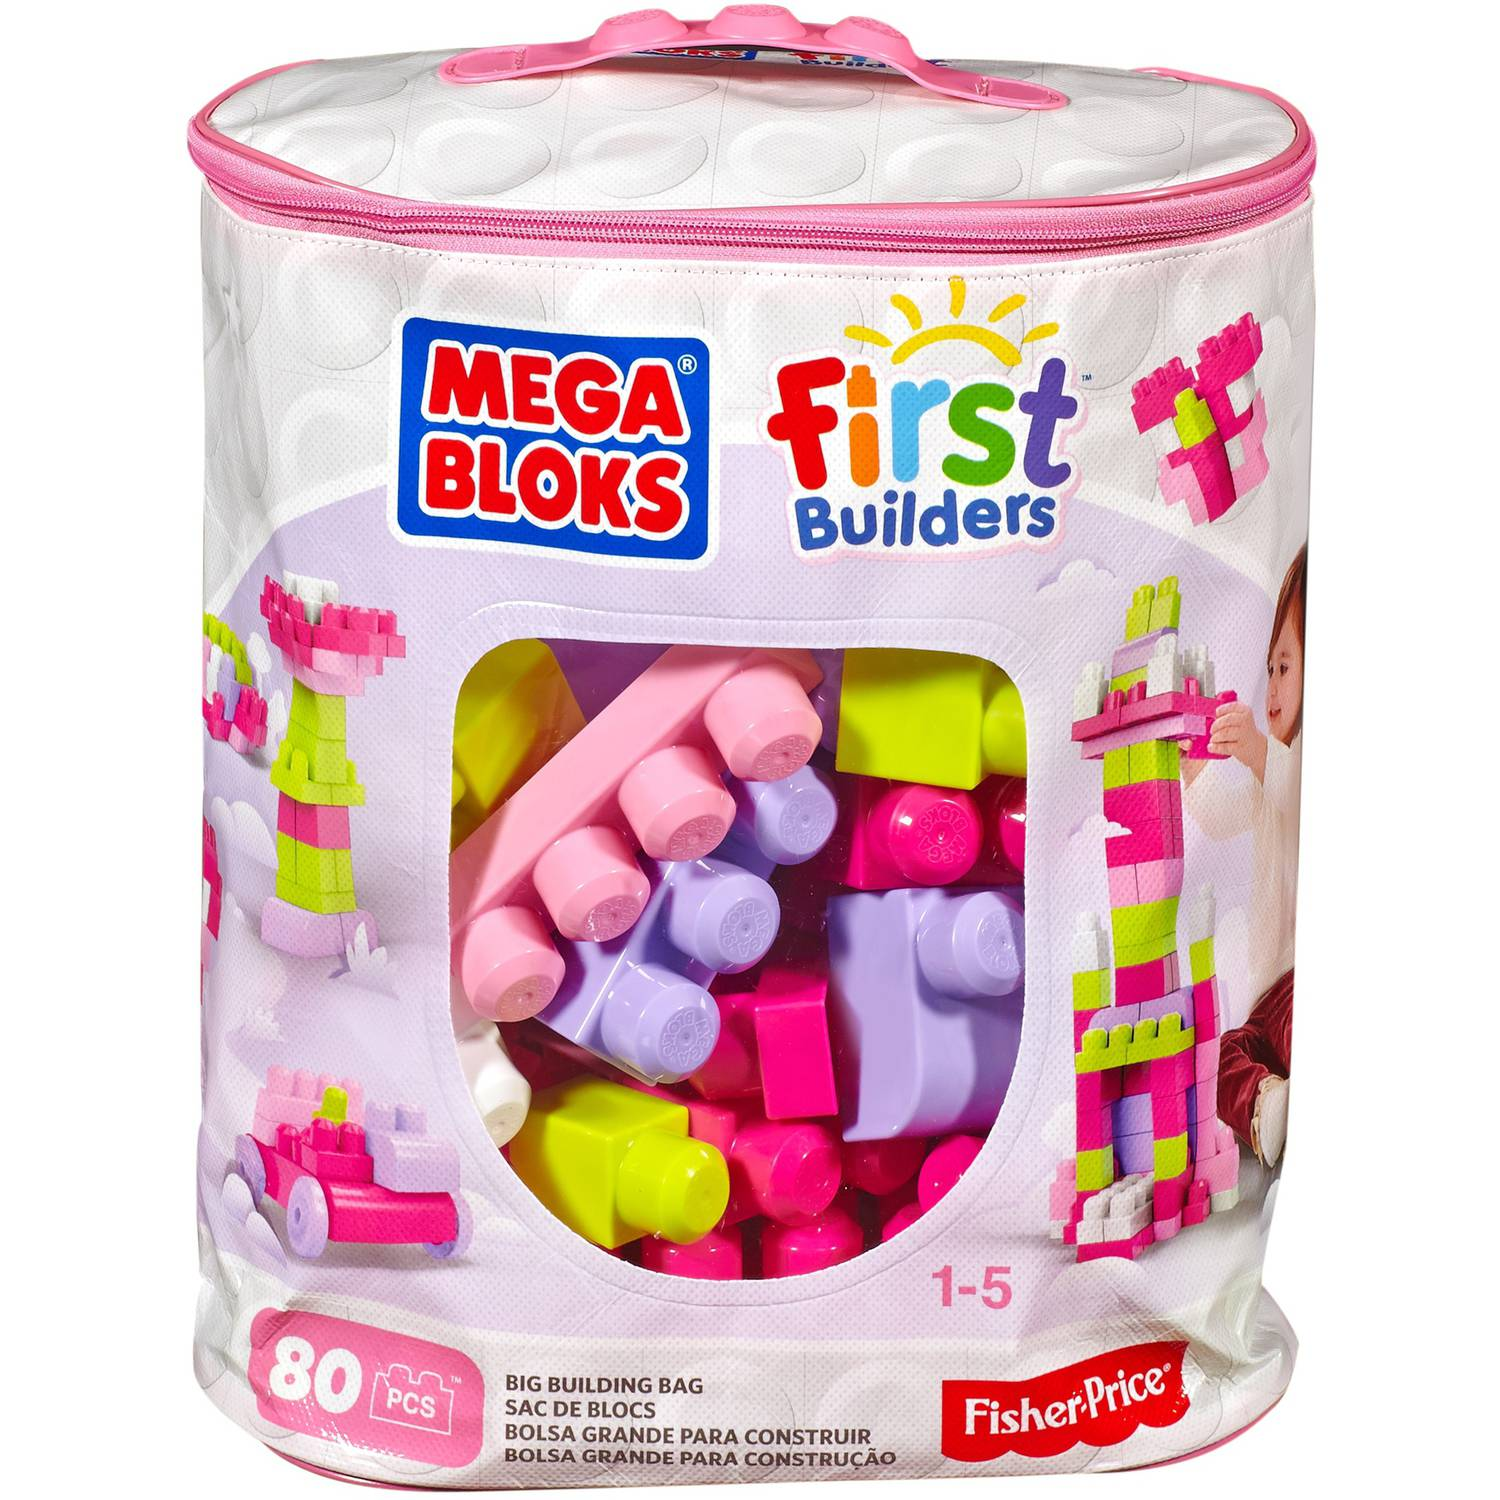 Mega Bloks Big Building Bag, Pink, 80 Pieces